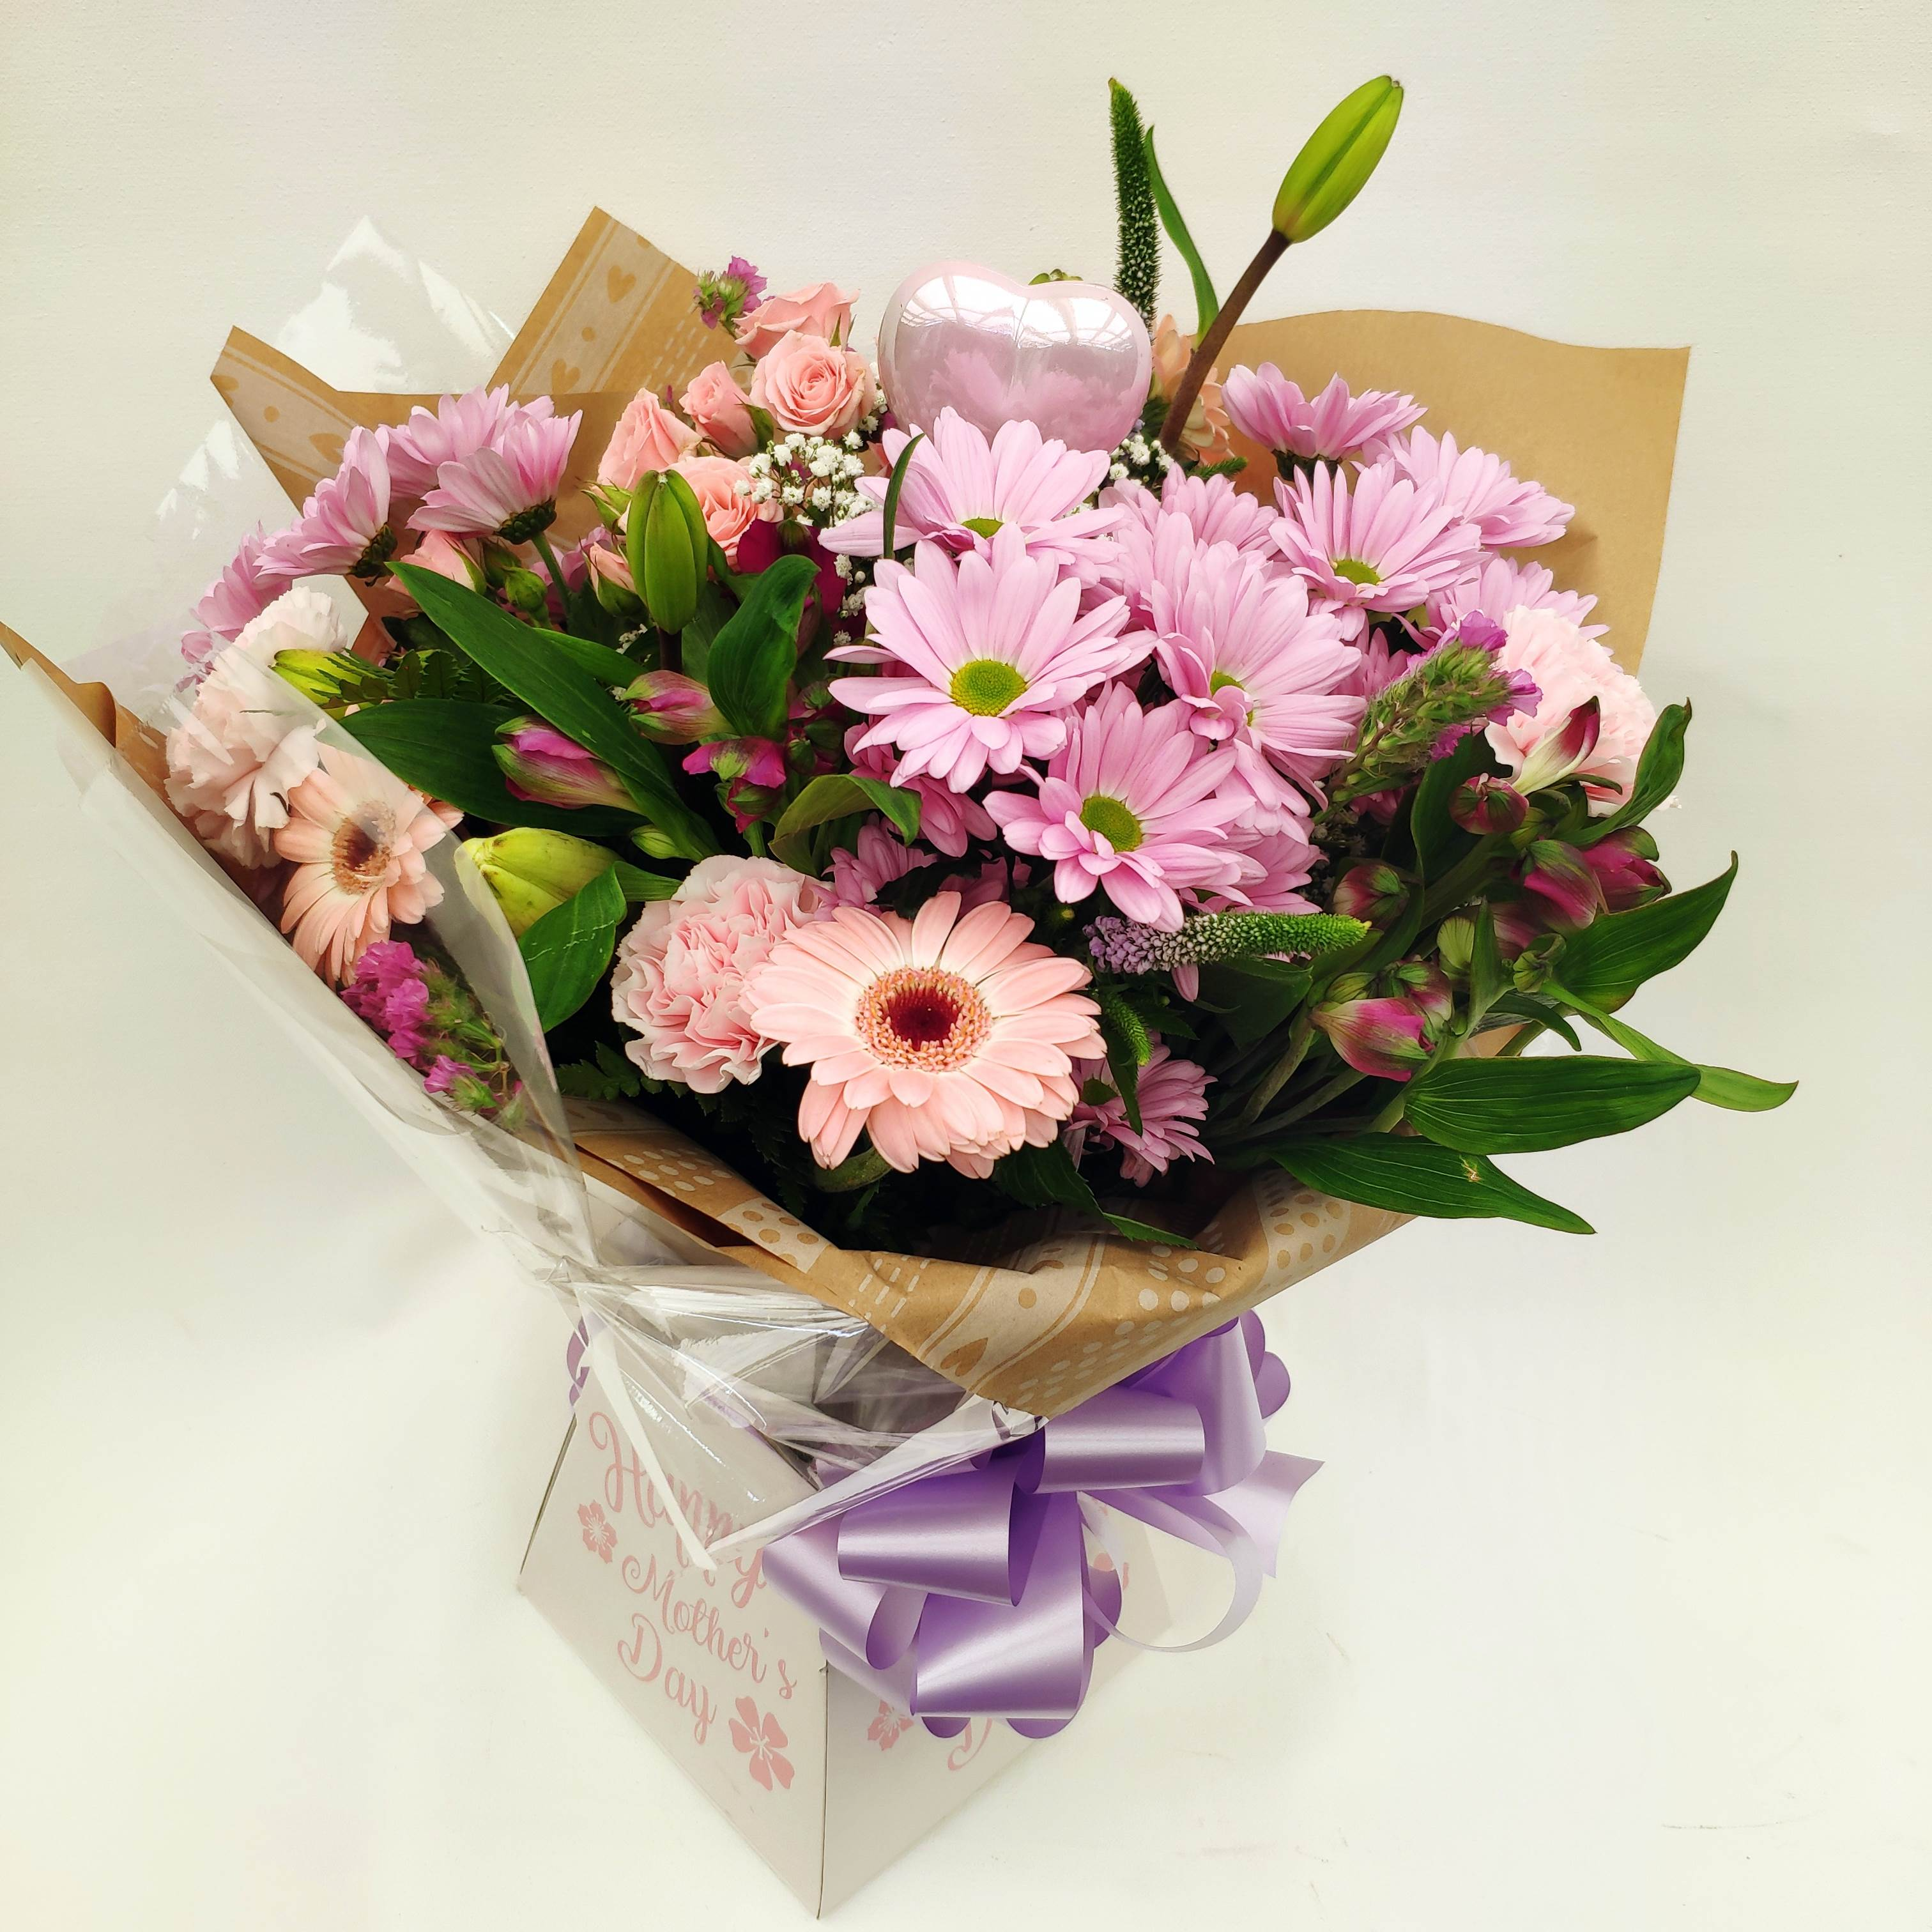 Hostess Aquapacked In Glass Vase And Gift Box Gibral Flora Flowers